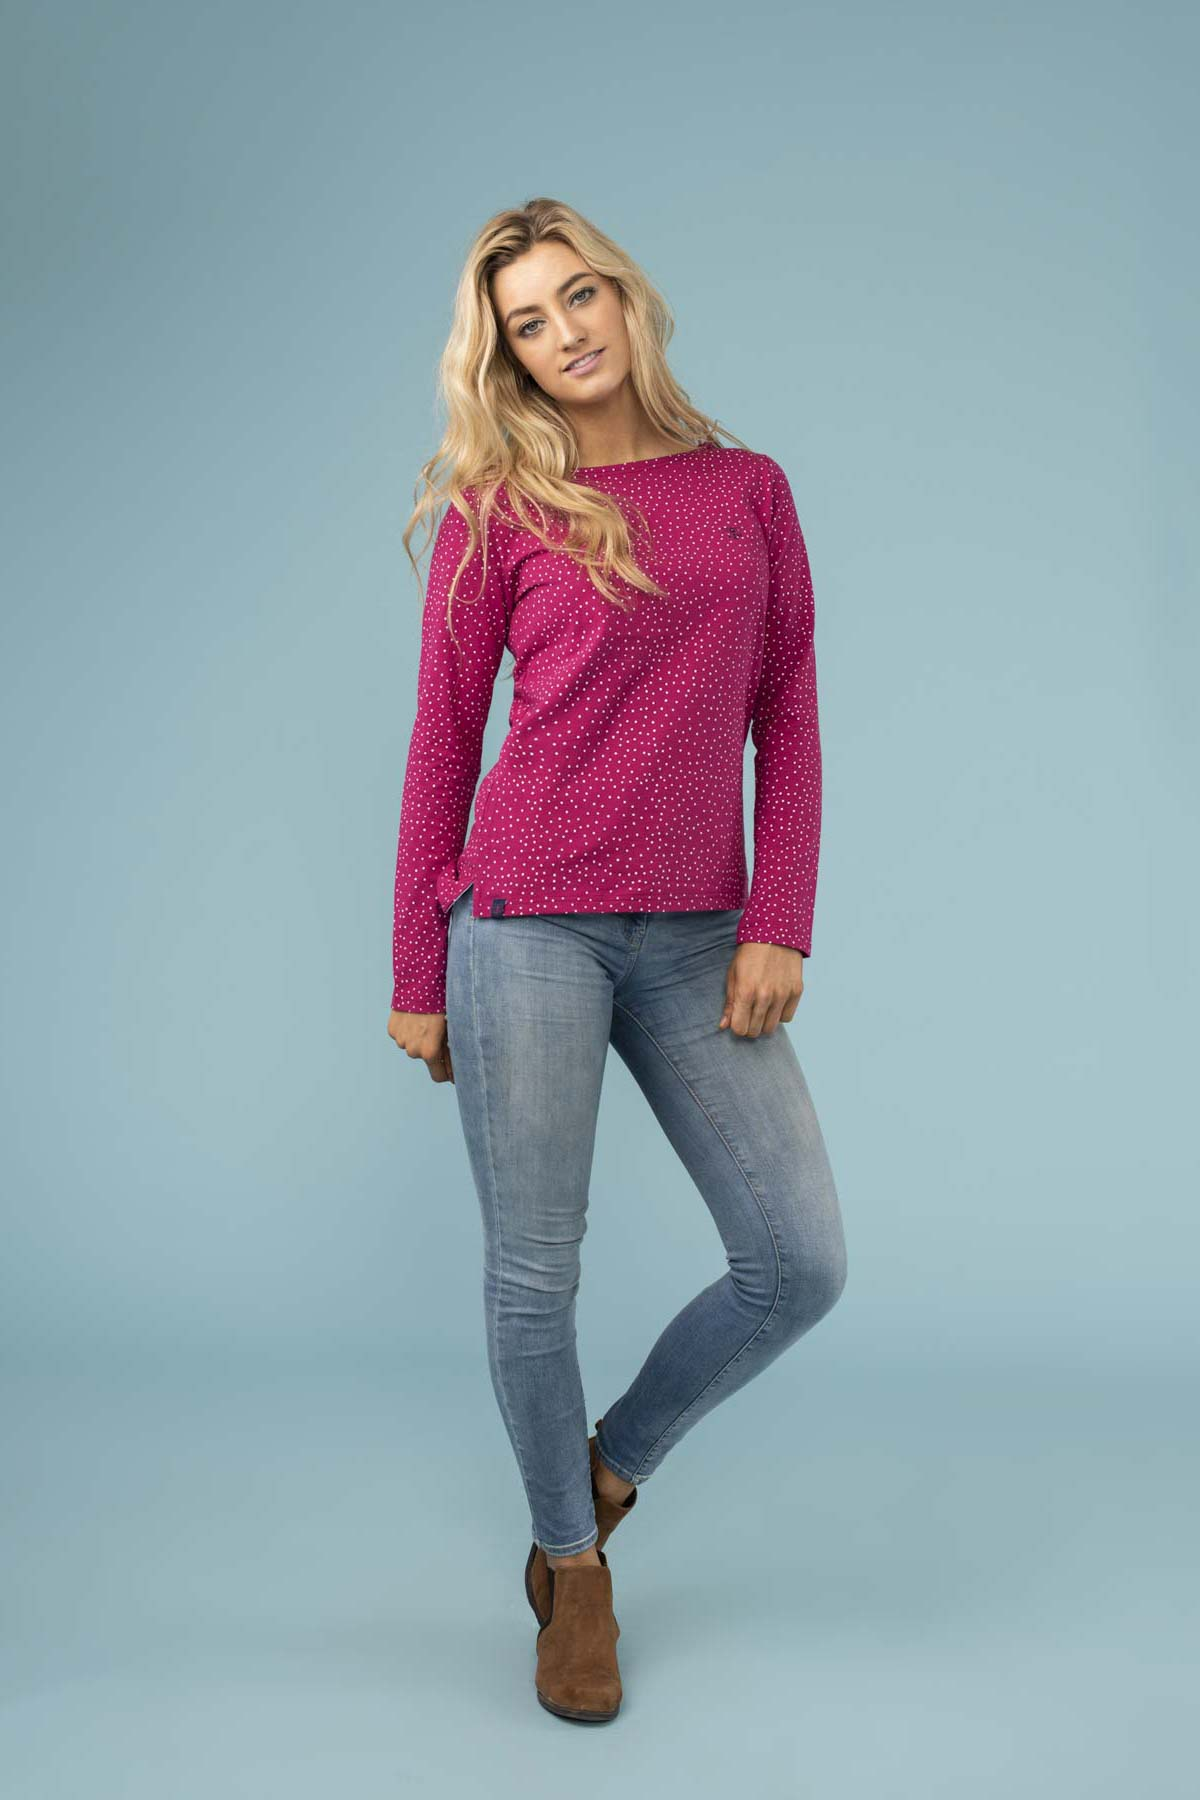 Causeway Long Sleeve Top in Jazzberry Dot